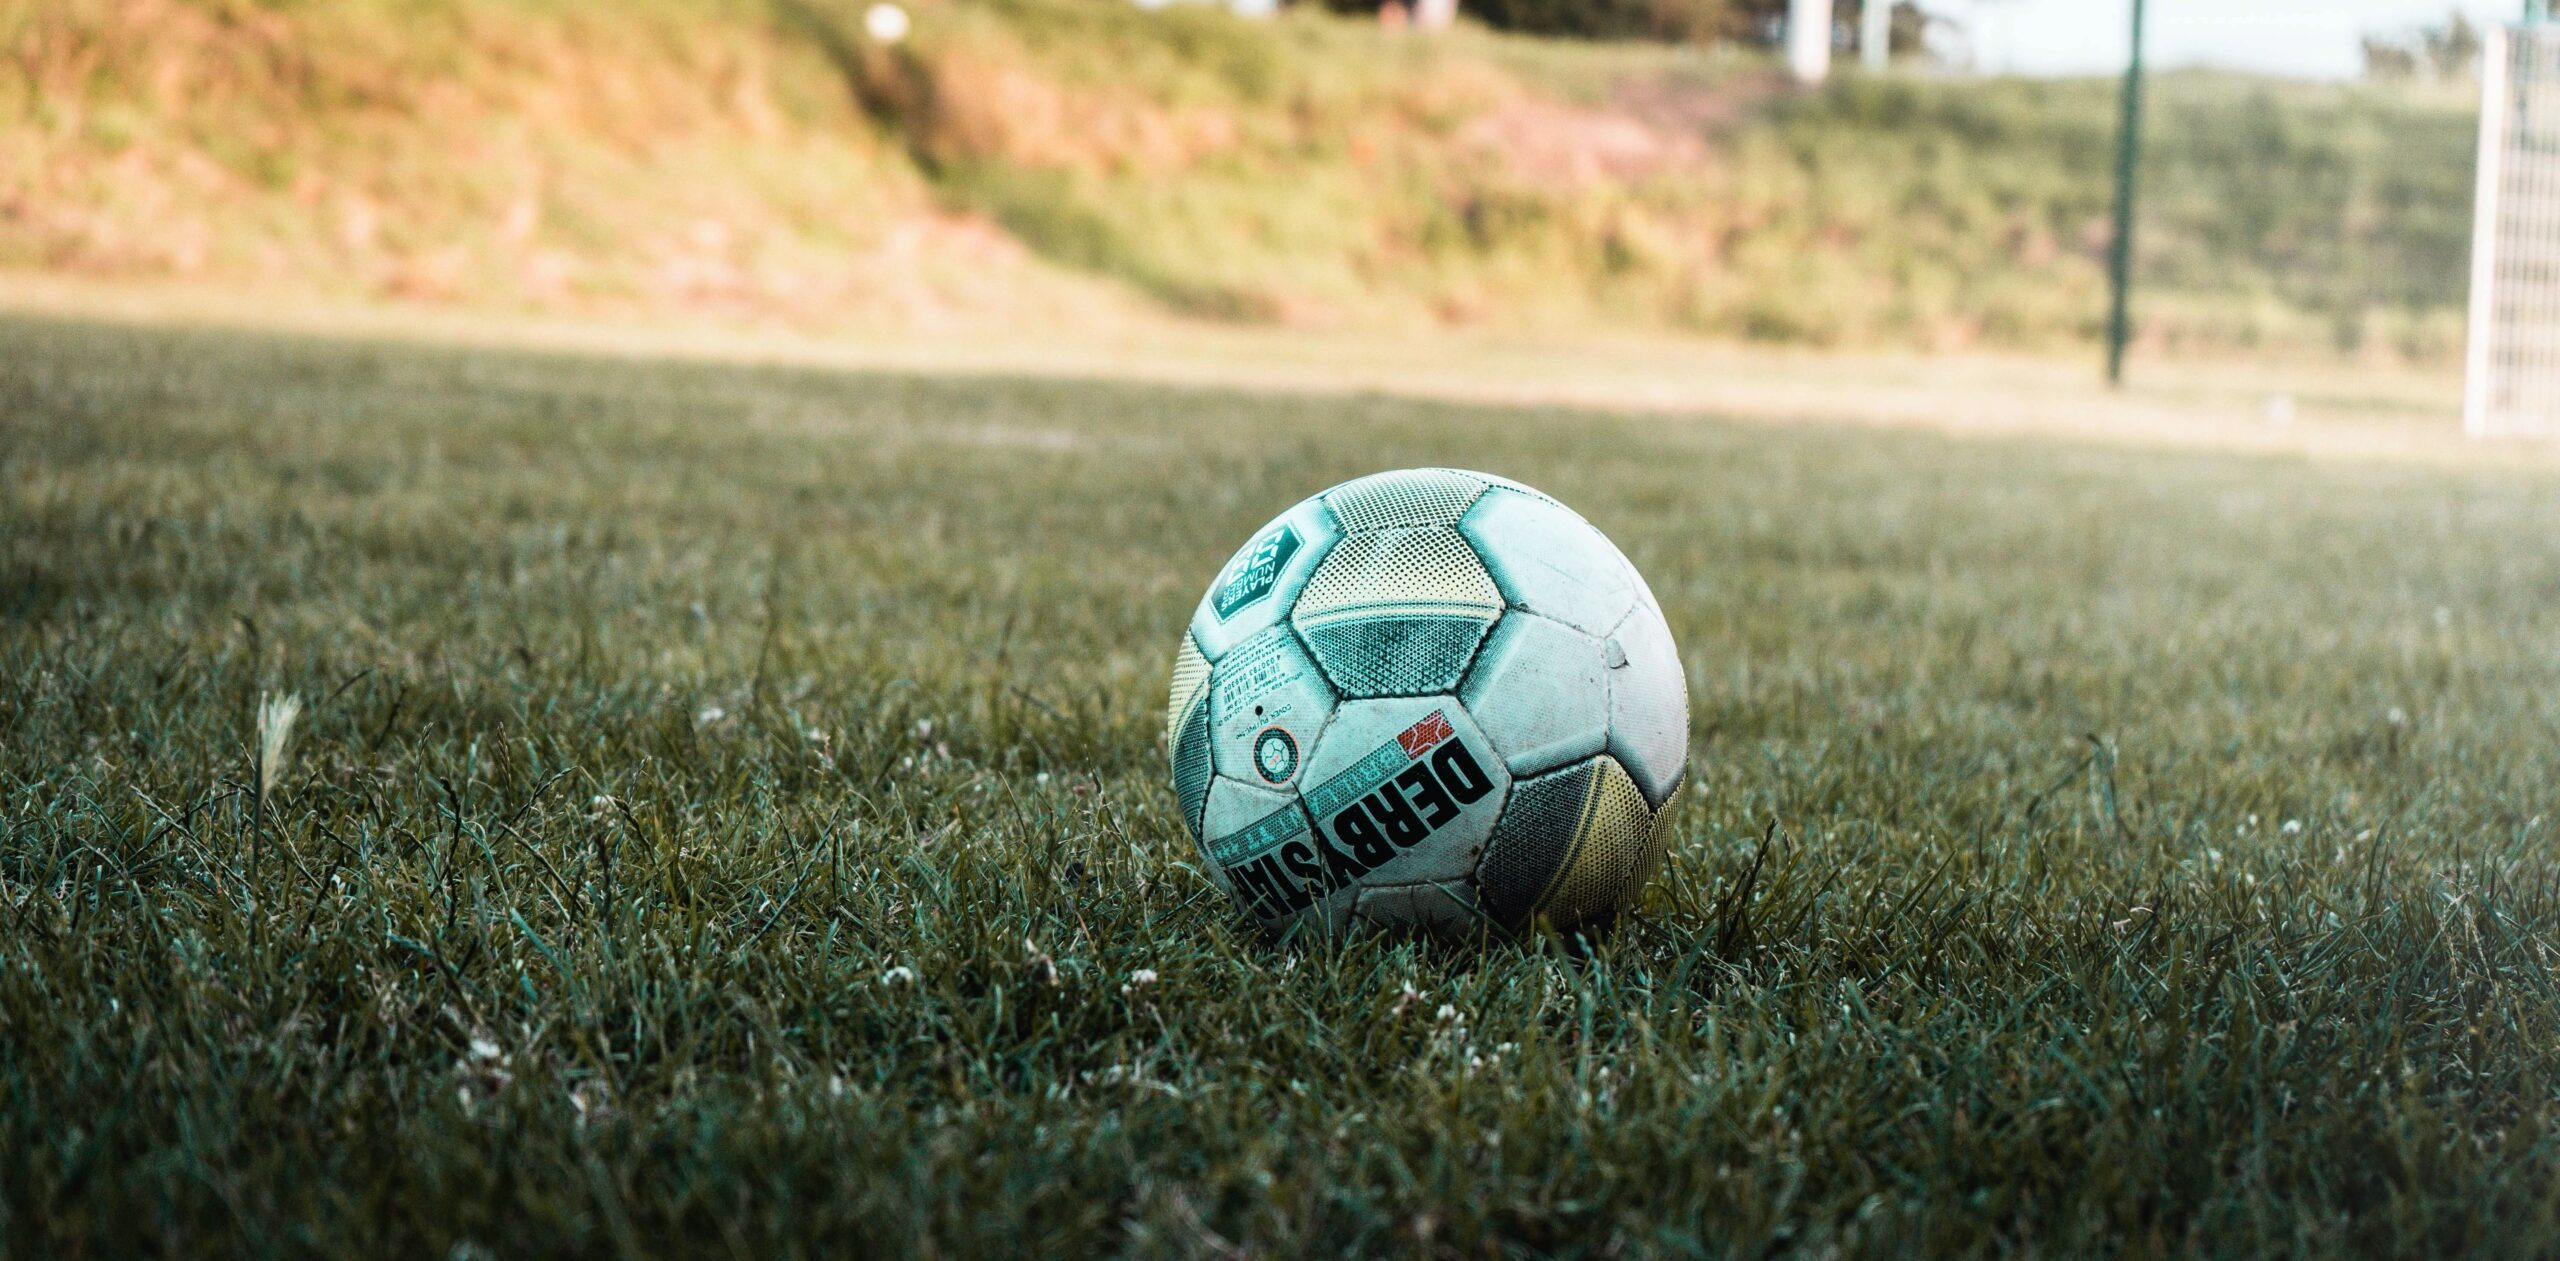 How The FIFA Video Game Increased Soccer's Popularity